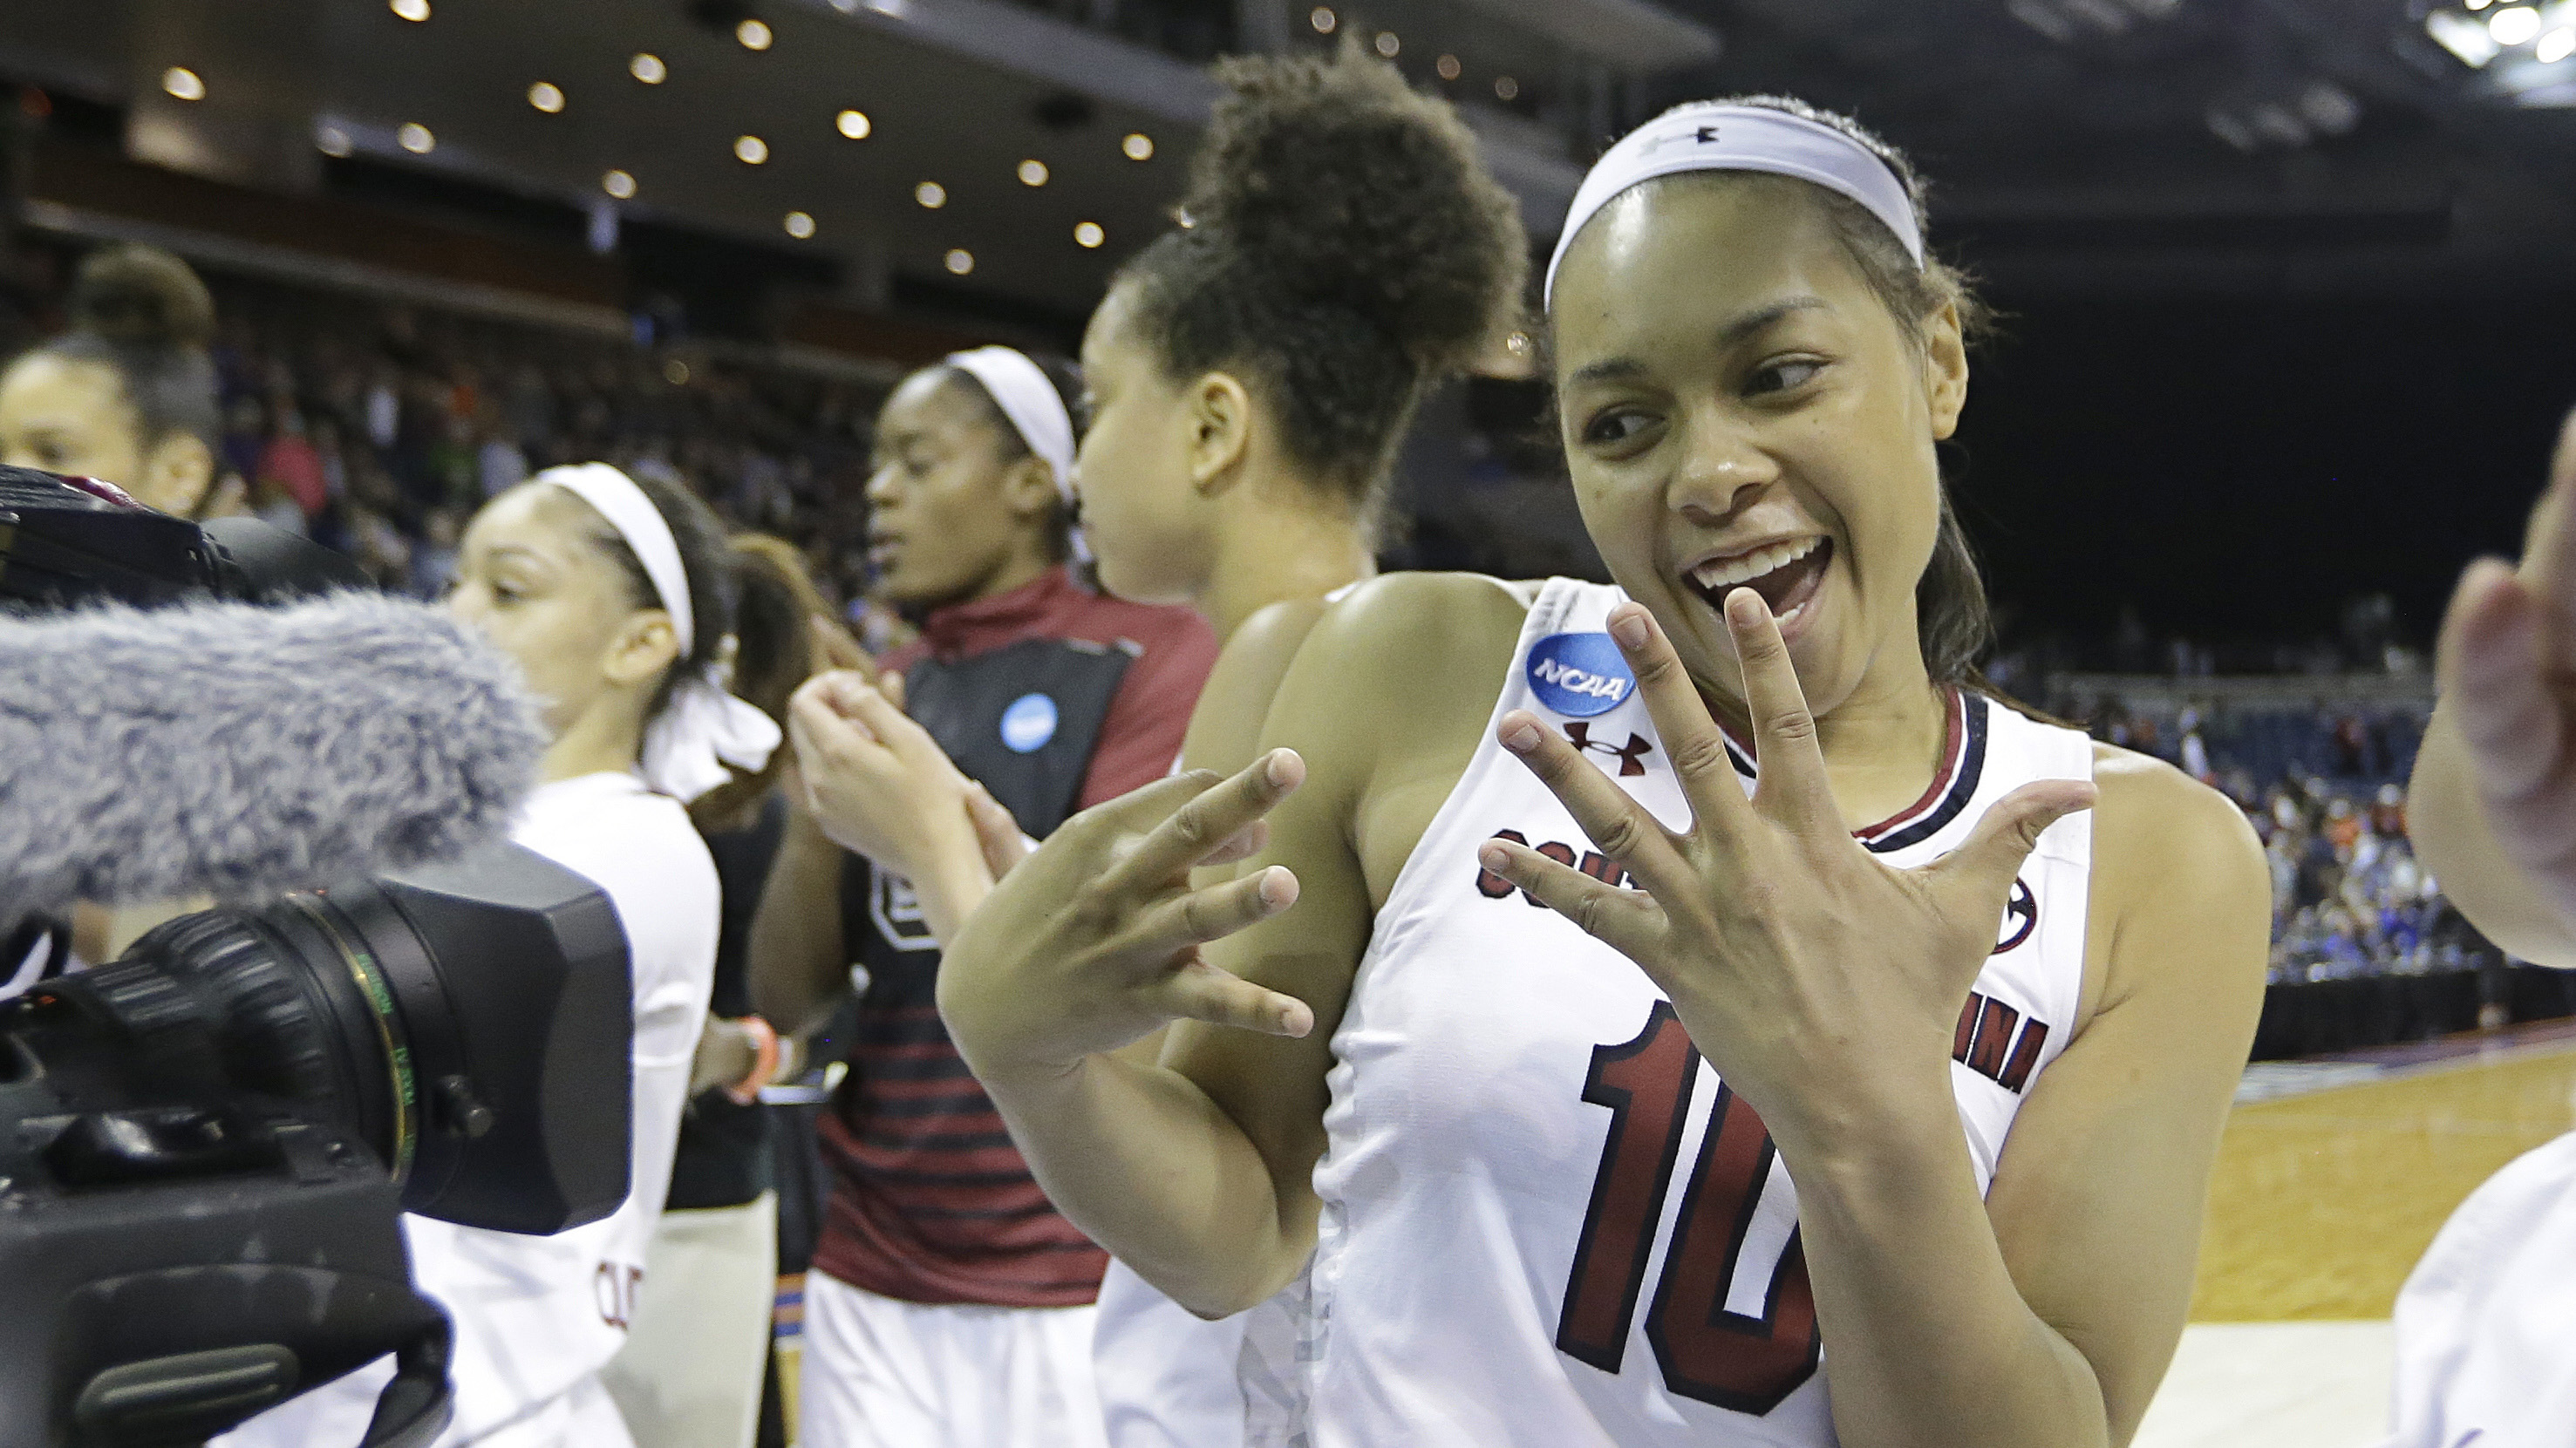 South Carolina basketball: Men, women make Final Four | SI.com